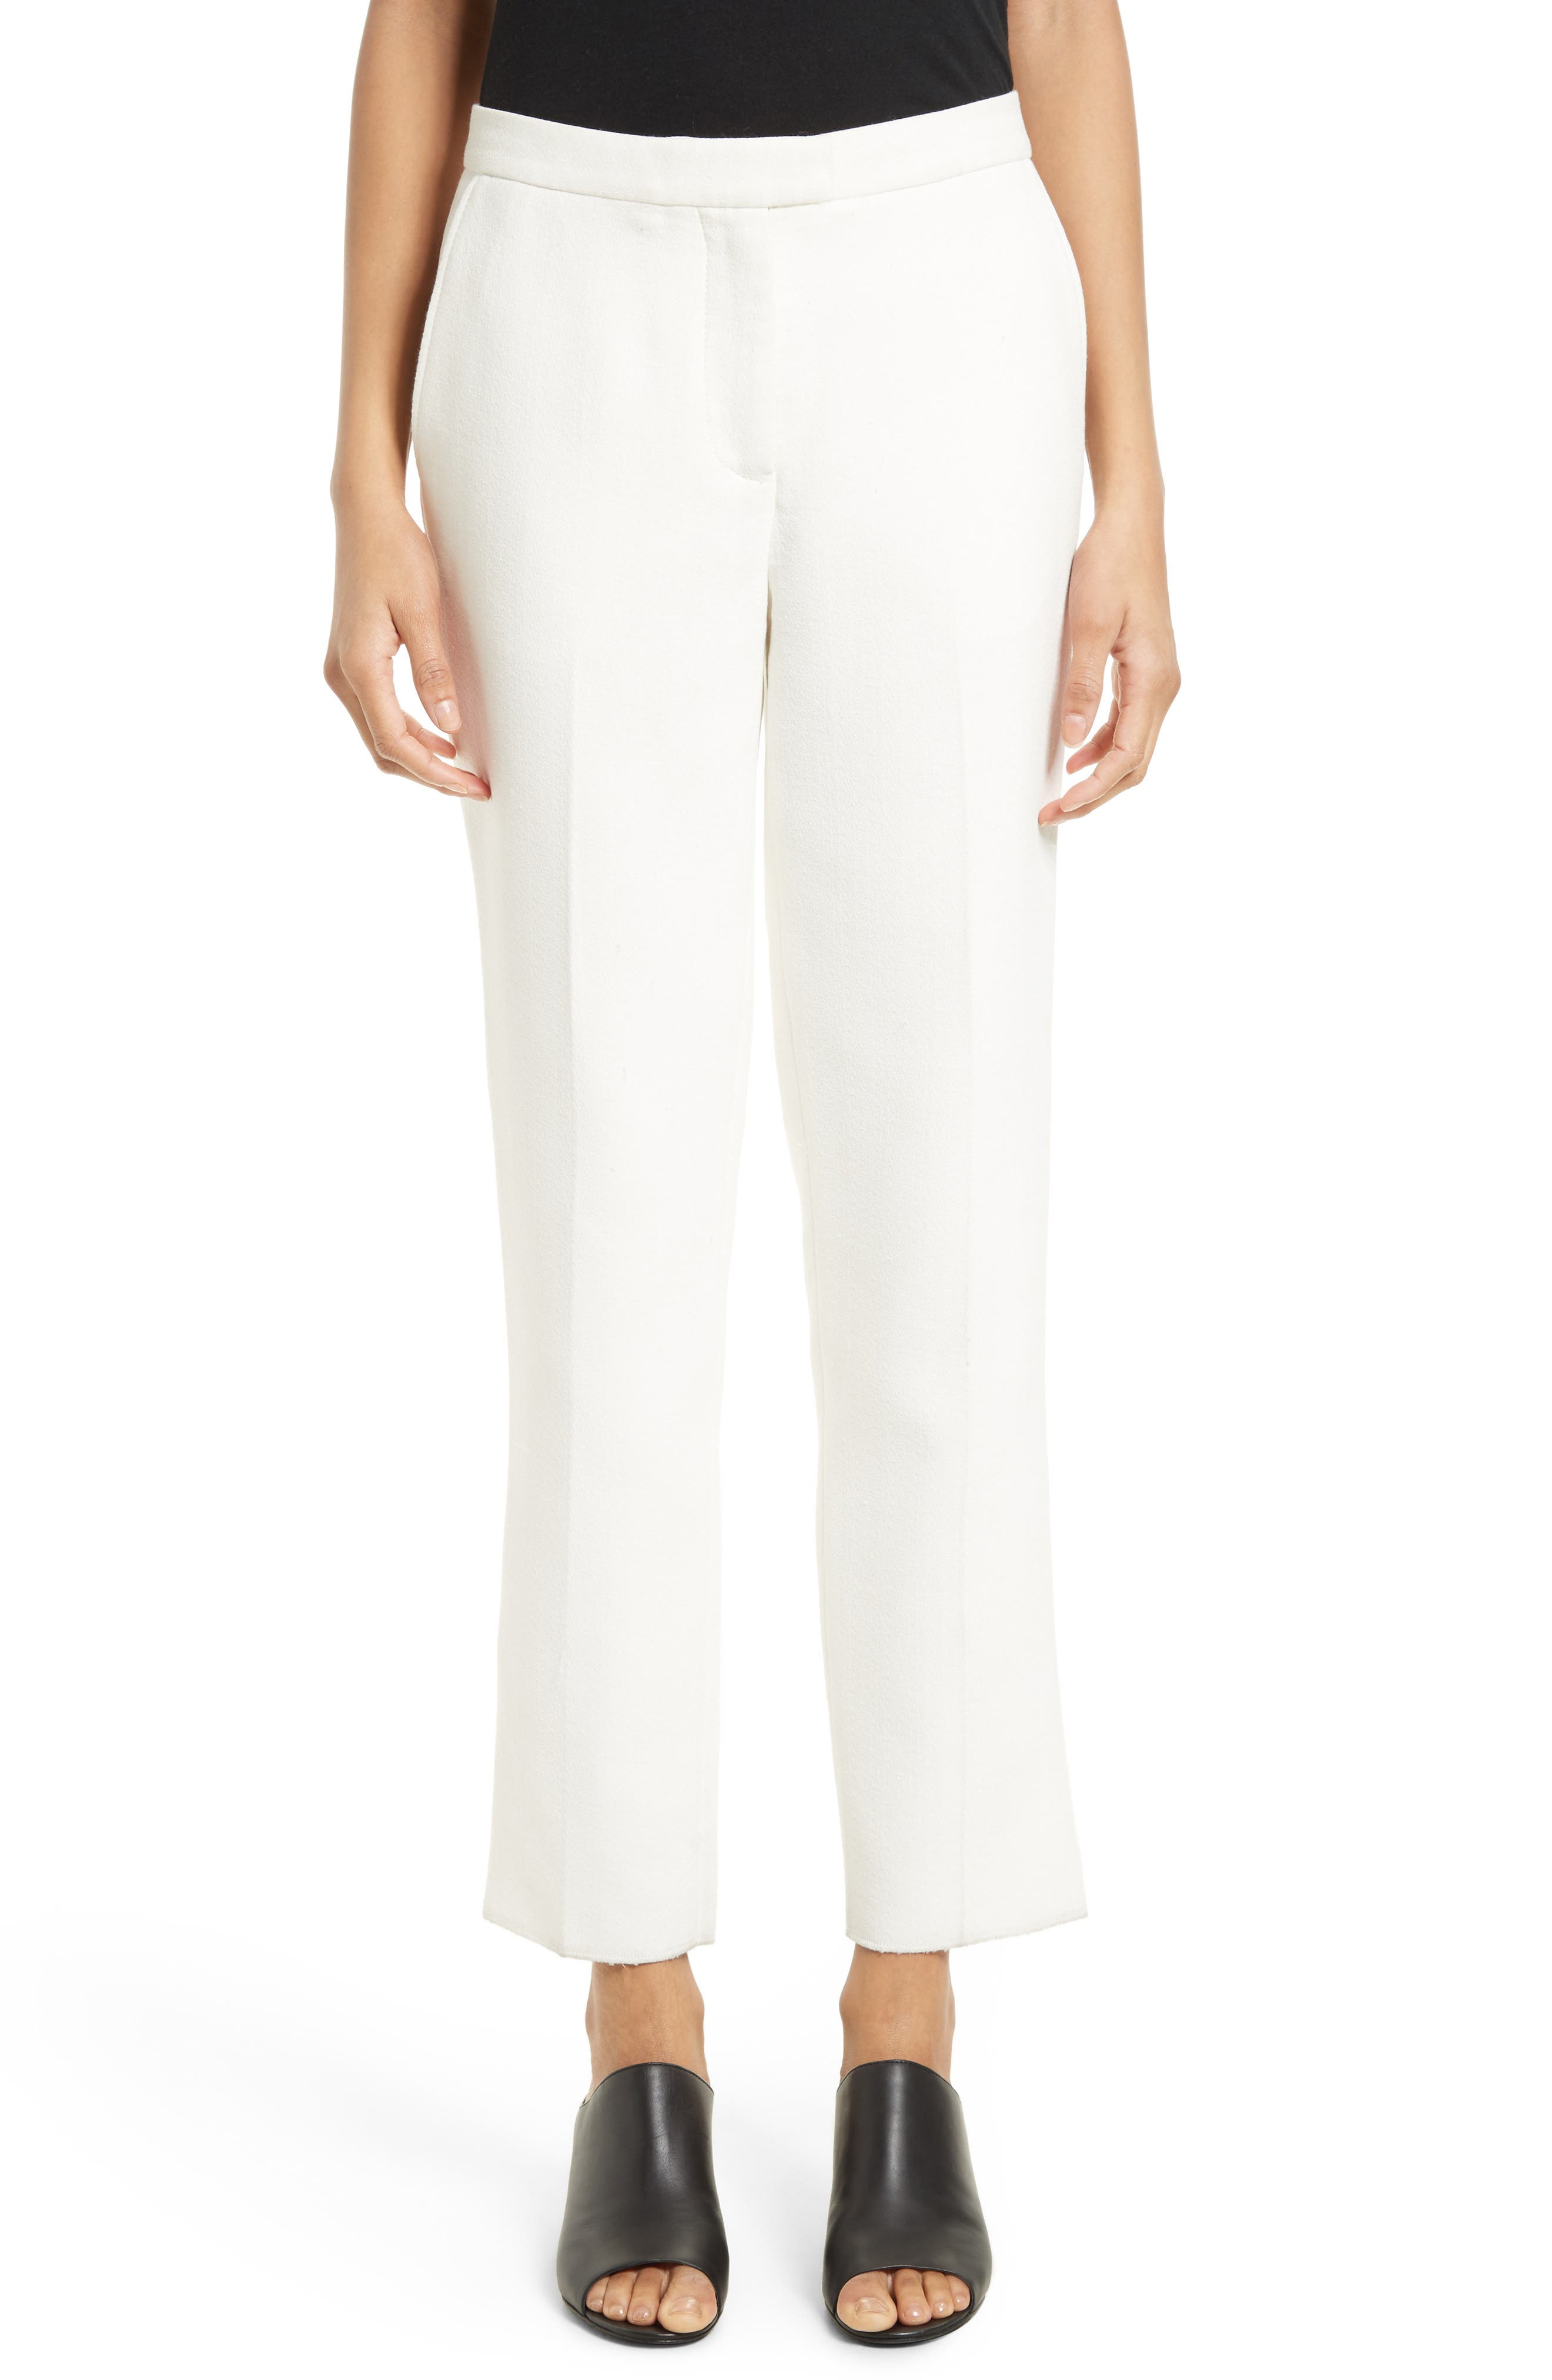 3.1 Phillip Lim Skinny Crop Needle Pants